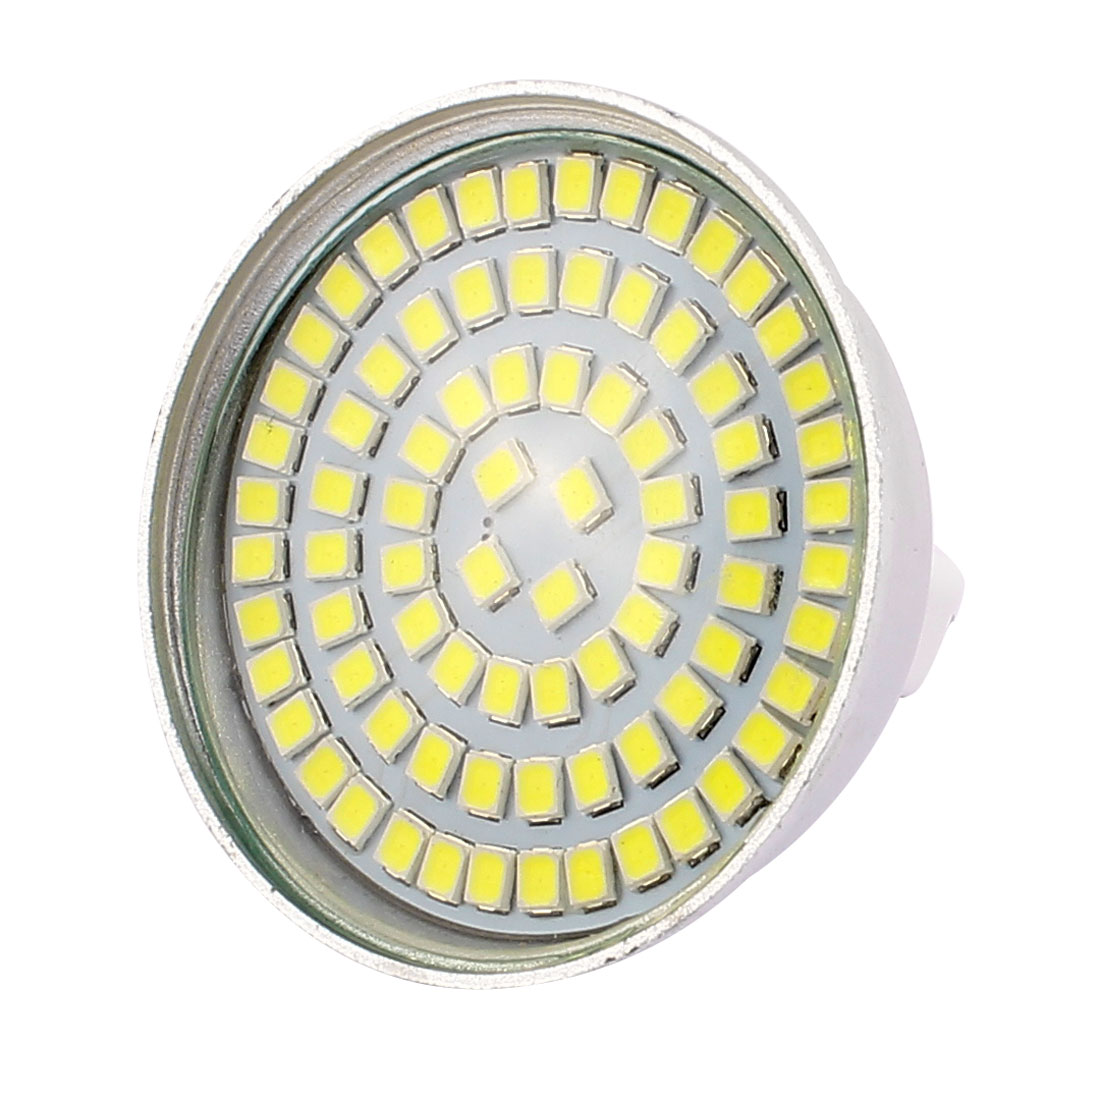 MR16 SMD 2835 80 LEDs Aluminum Energy Saving LED Lamp Bulb White AC 220V 8W